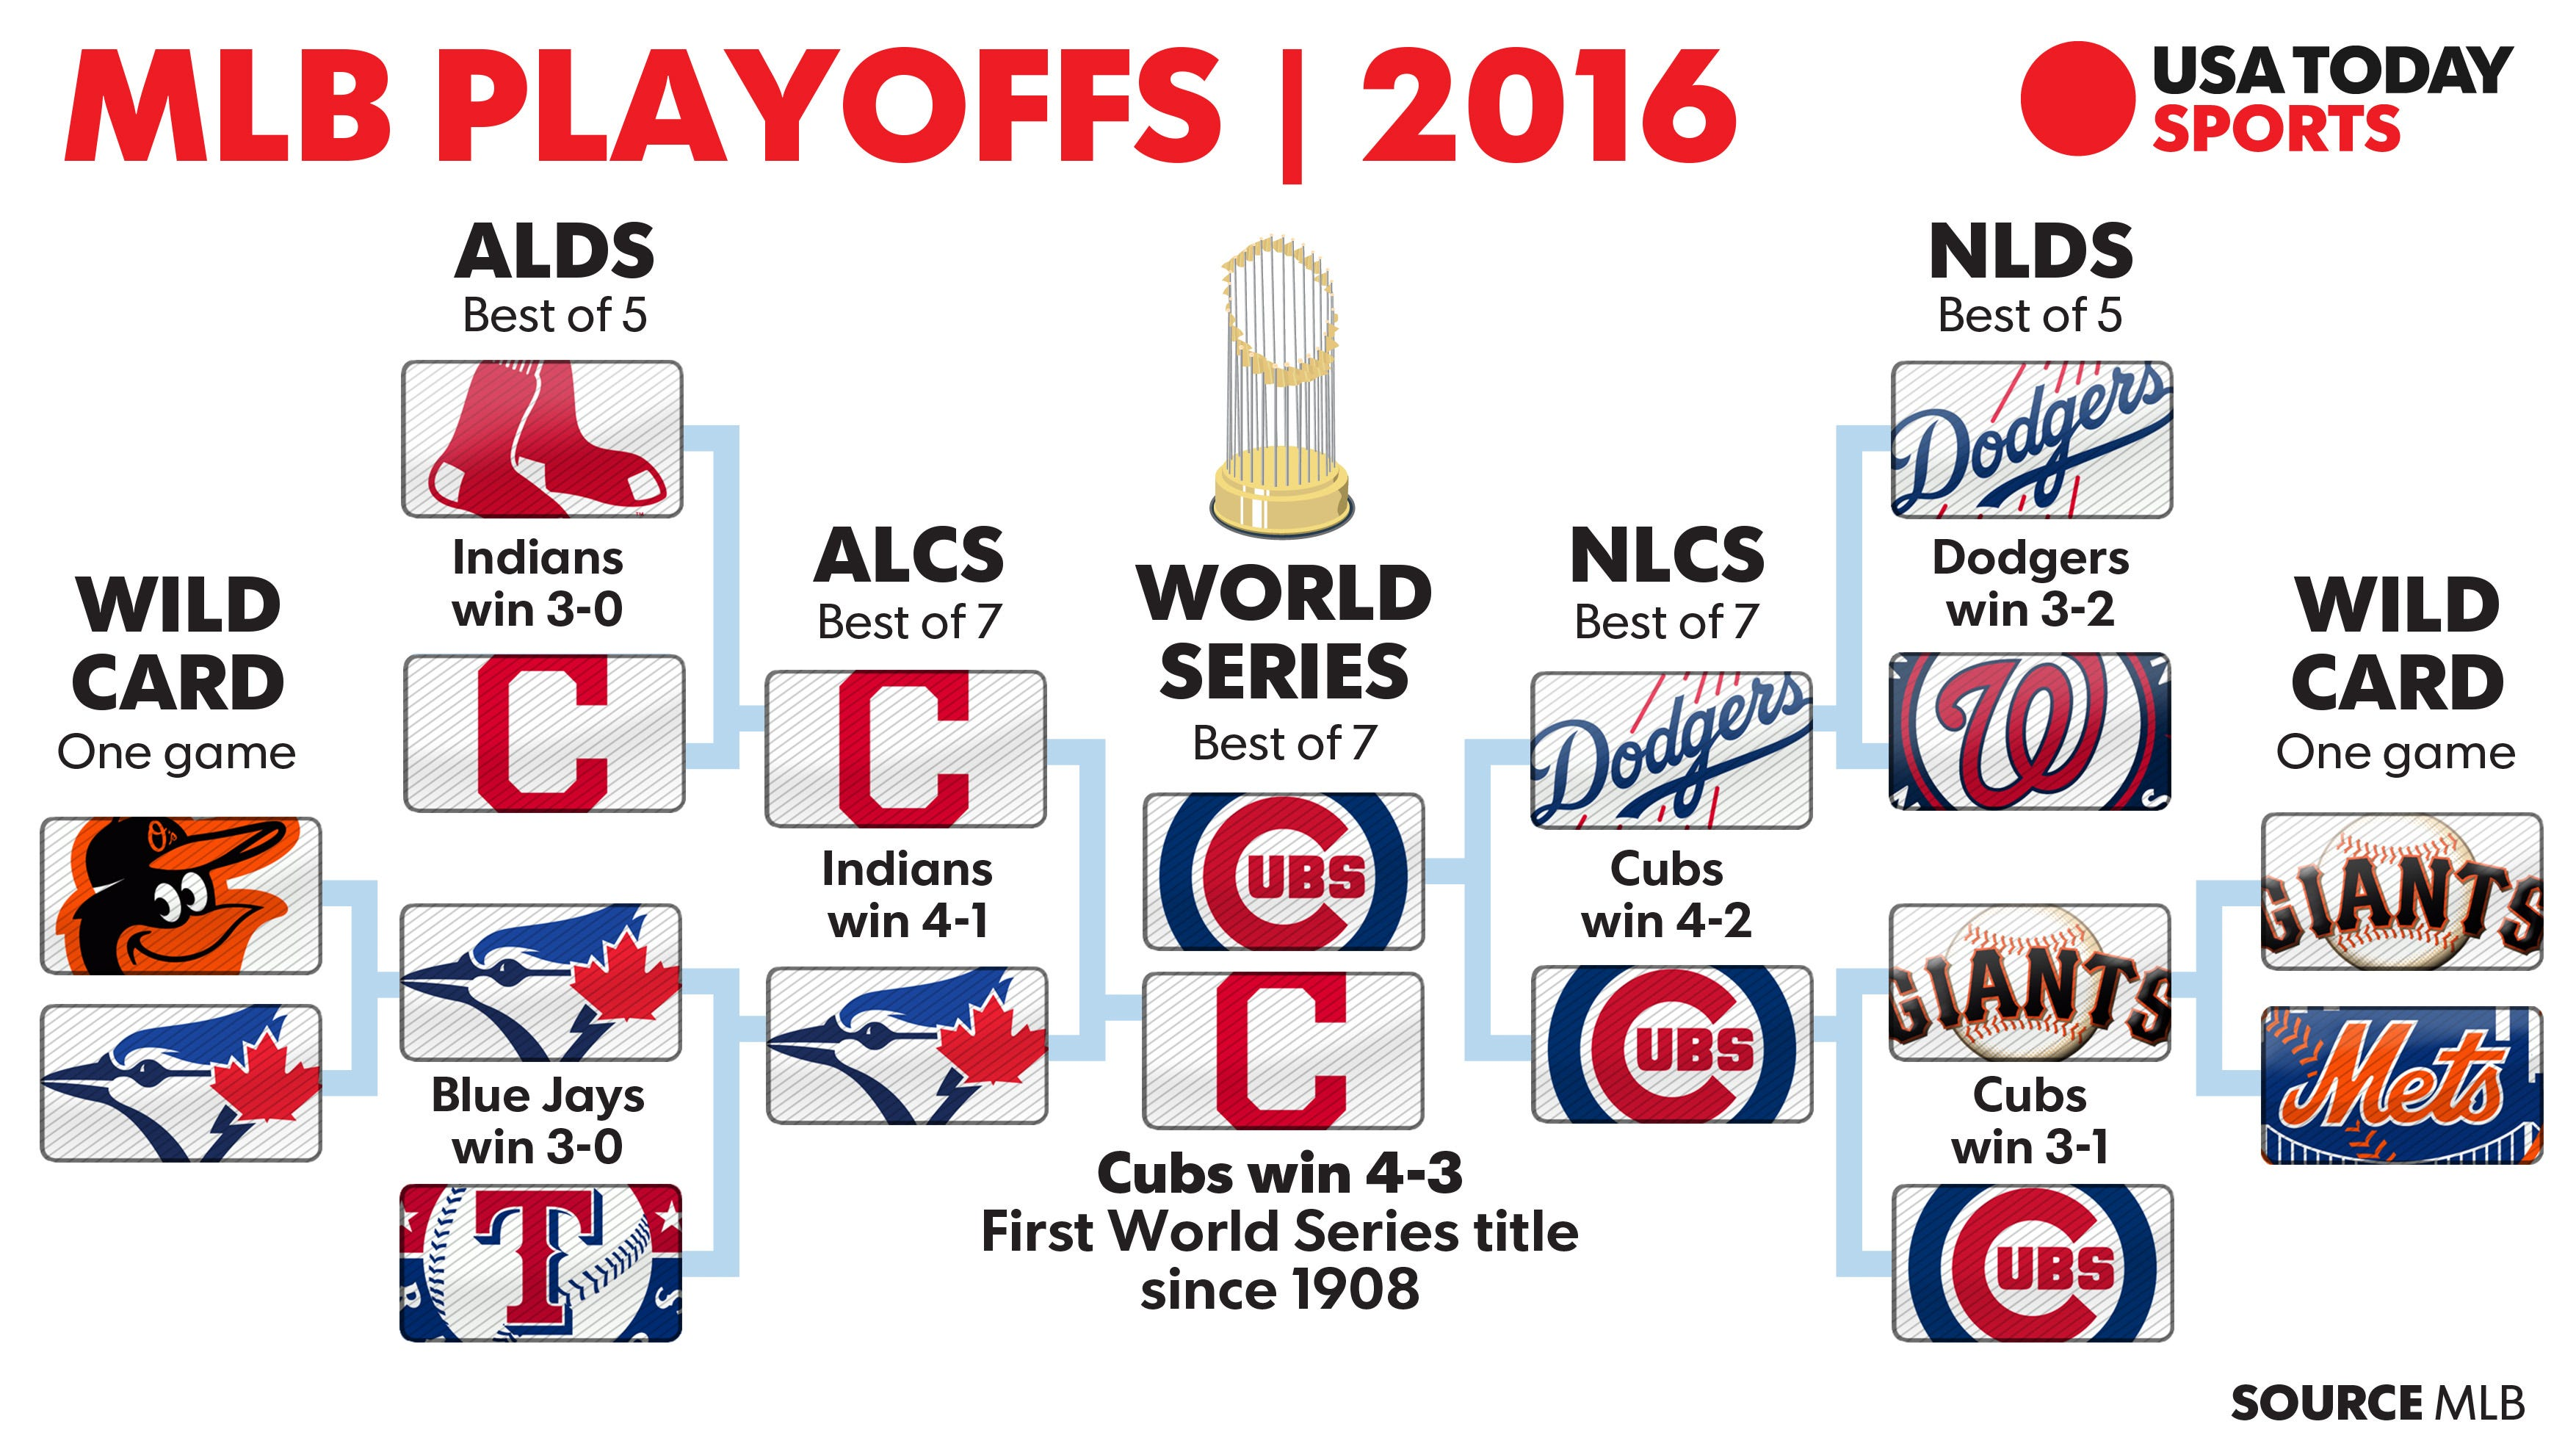 mlb postseason: schedule, start times, pitching matchups, tv info